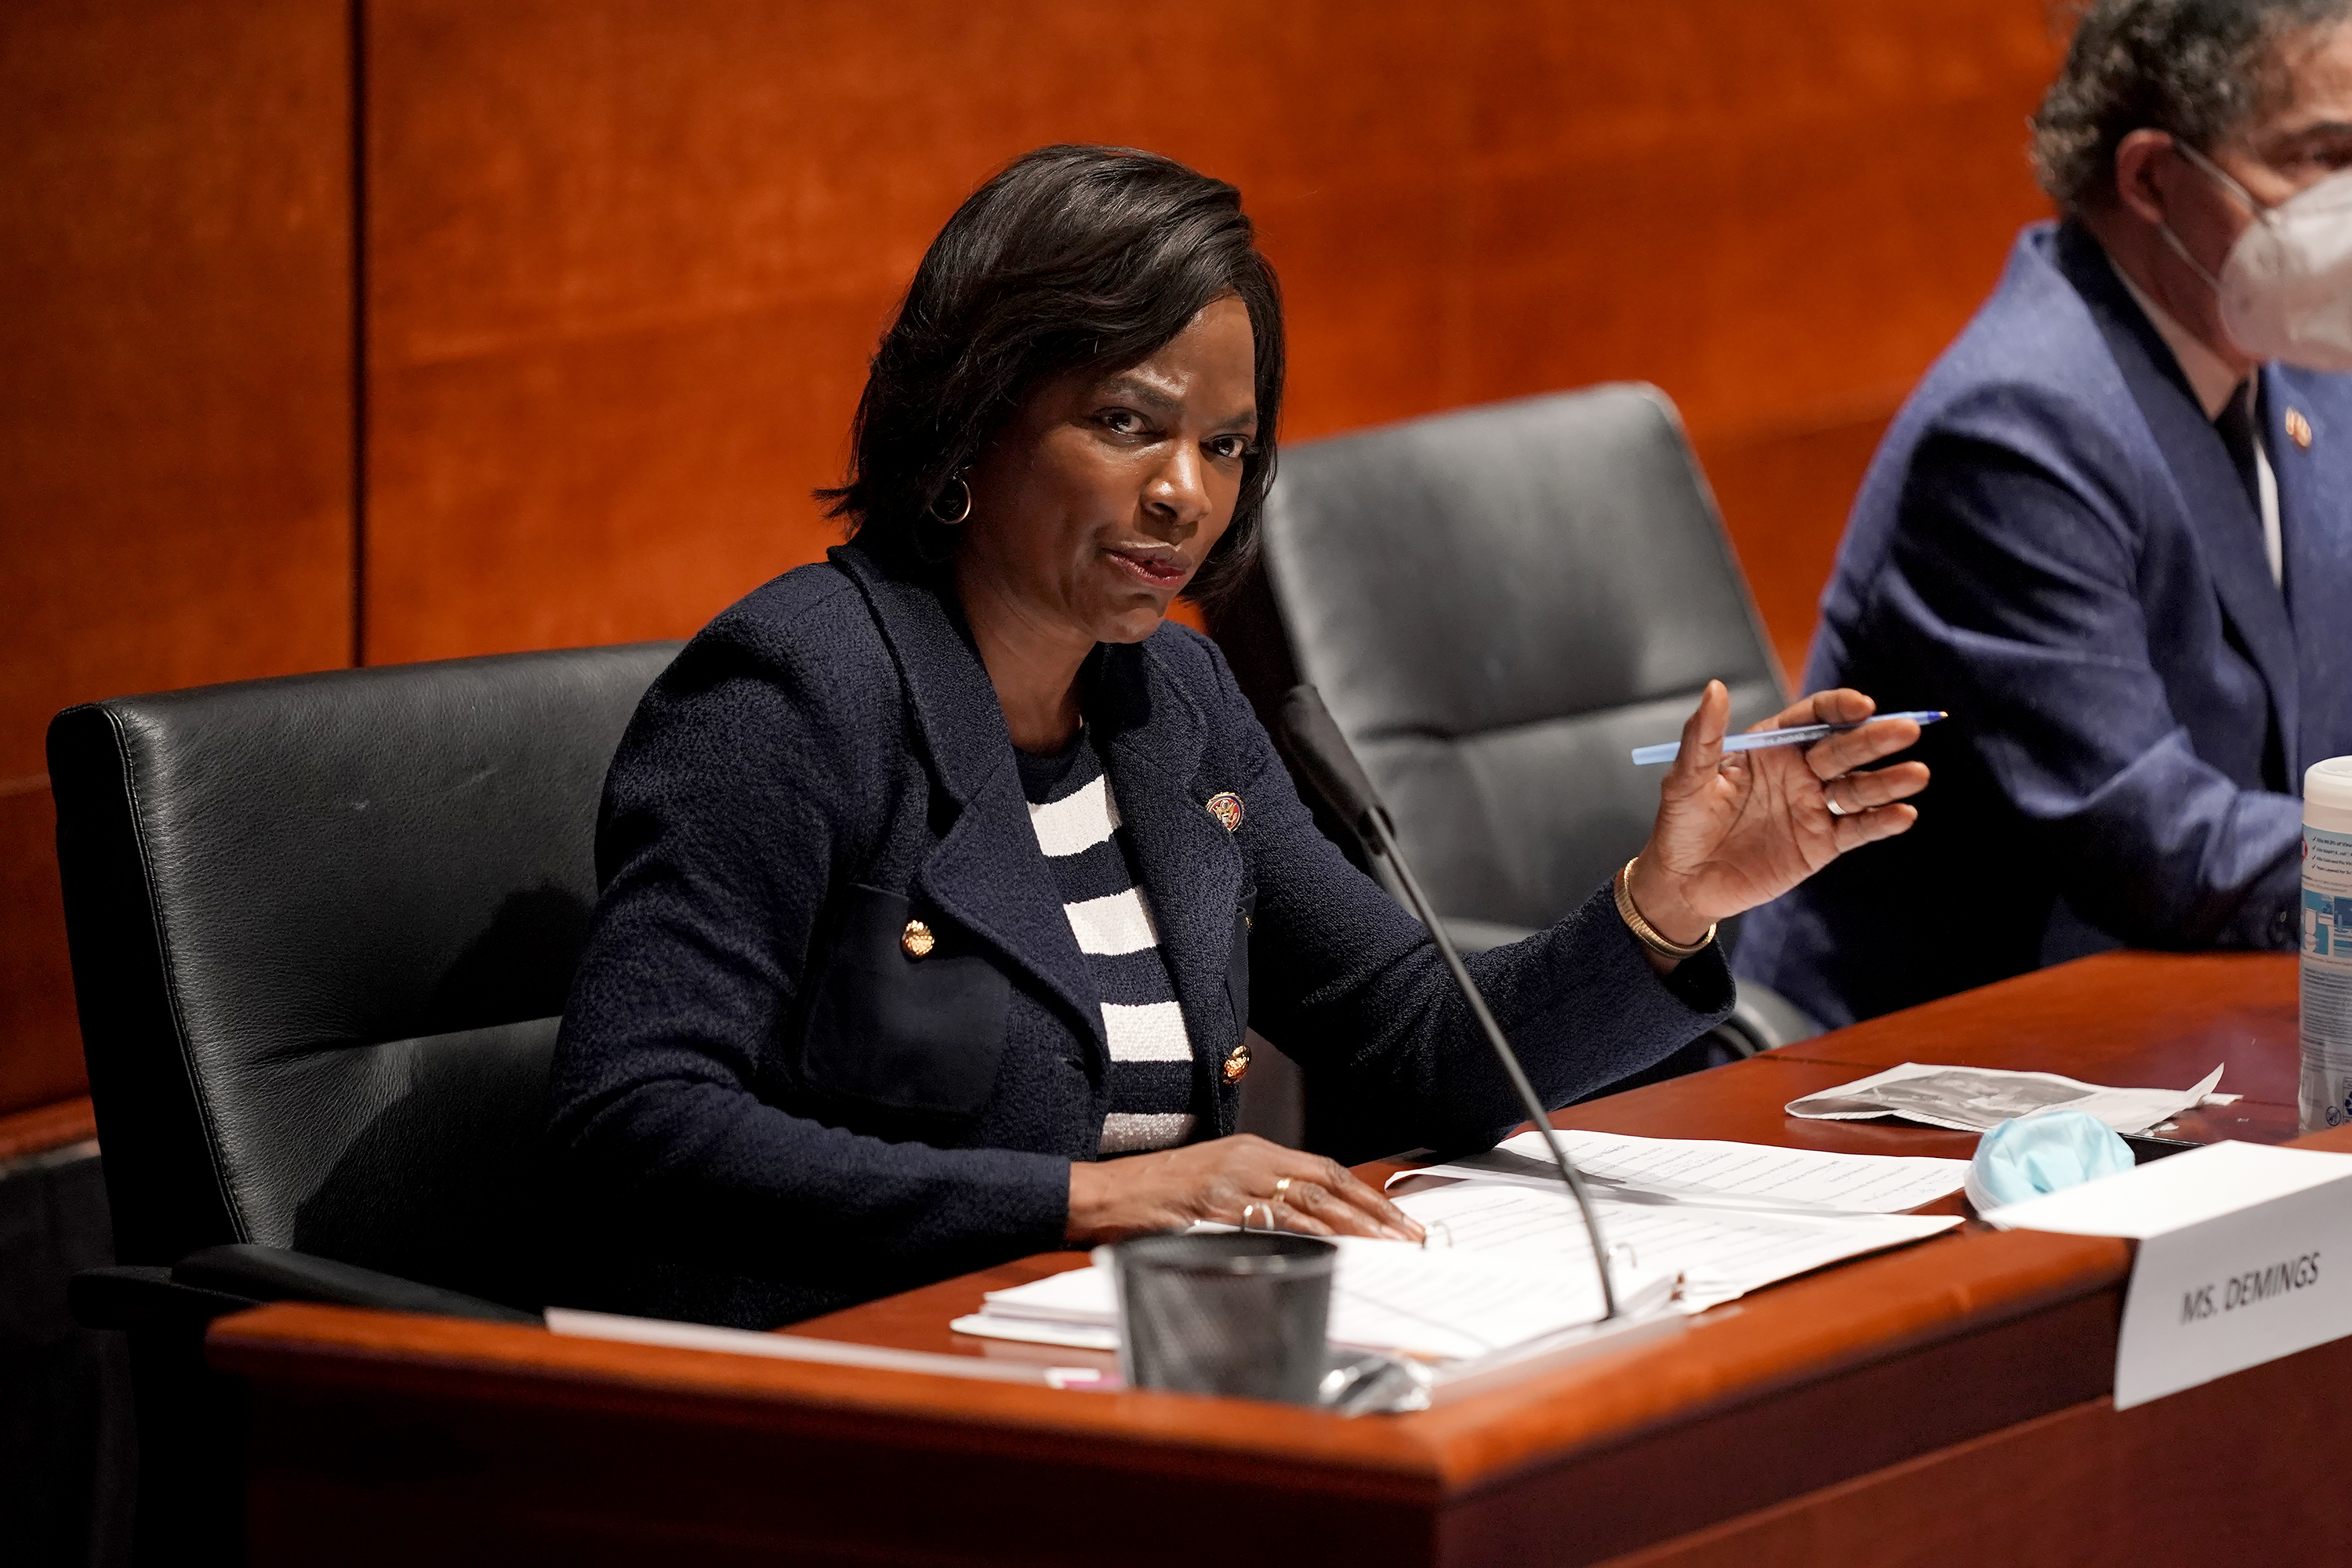 U.S. Rep. Val Demings (D-FL) speaks during a House Judiciary Committee hearing on police brutality and racial profiling on June 10 in Washington.